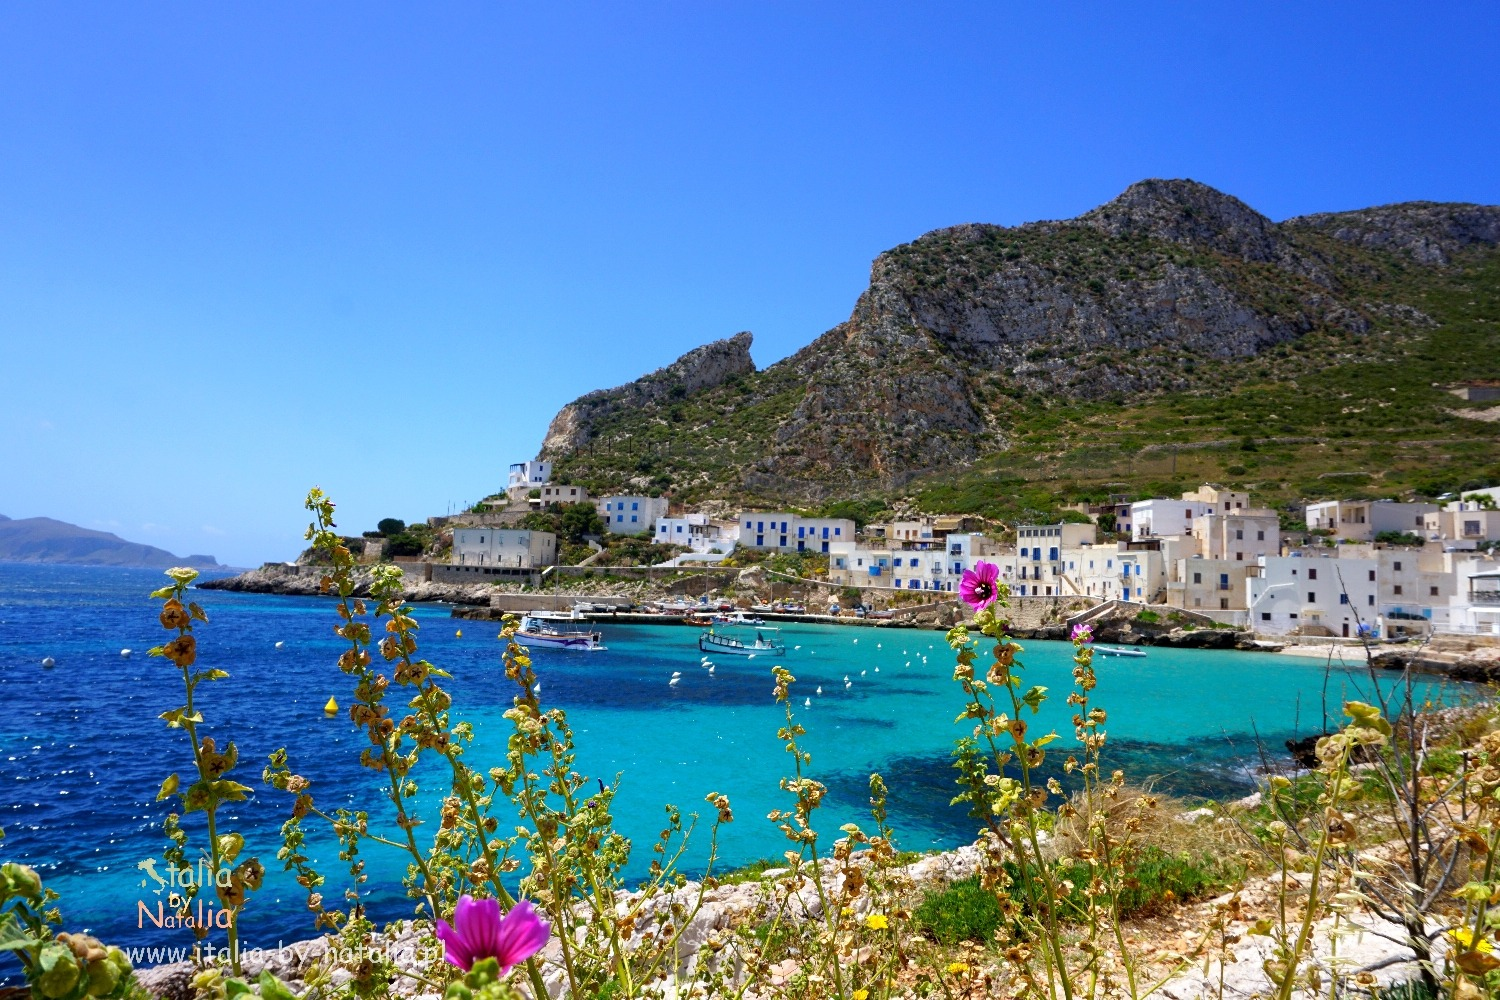 Sicily. Levanzo - 25 minutes to another world